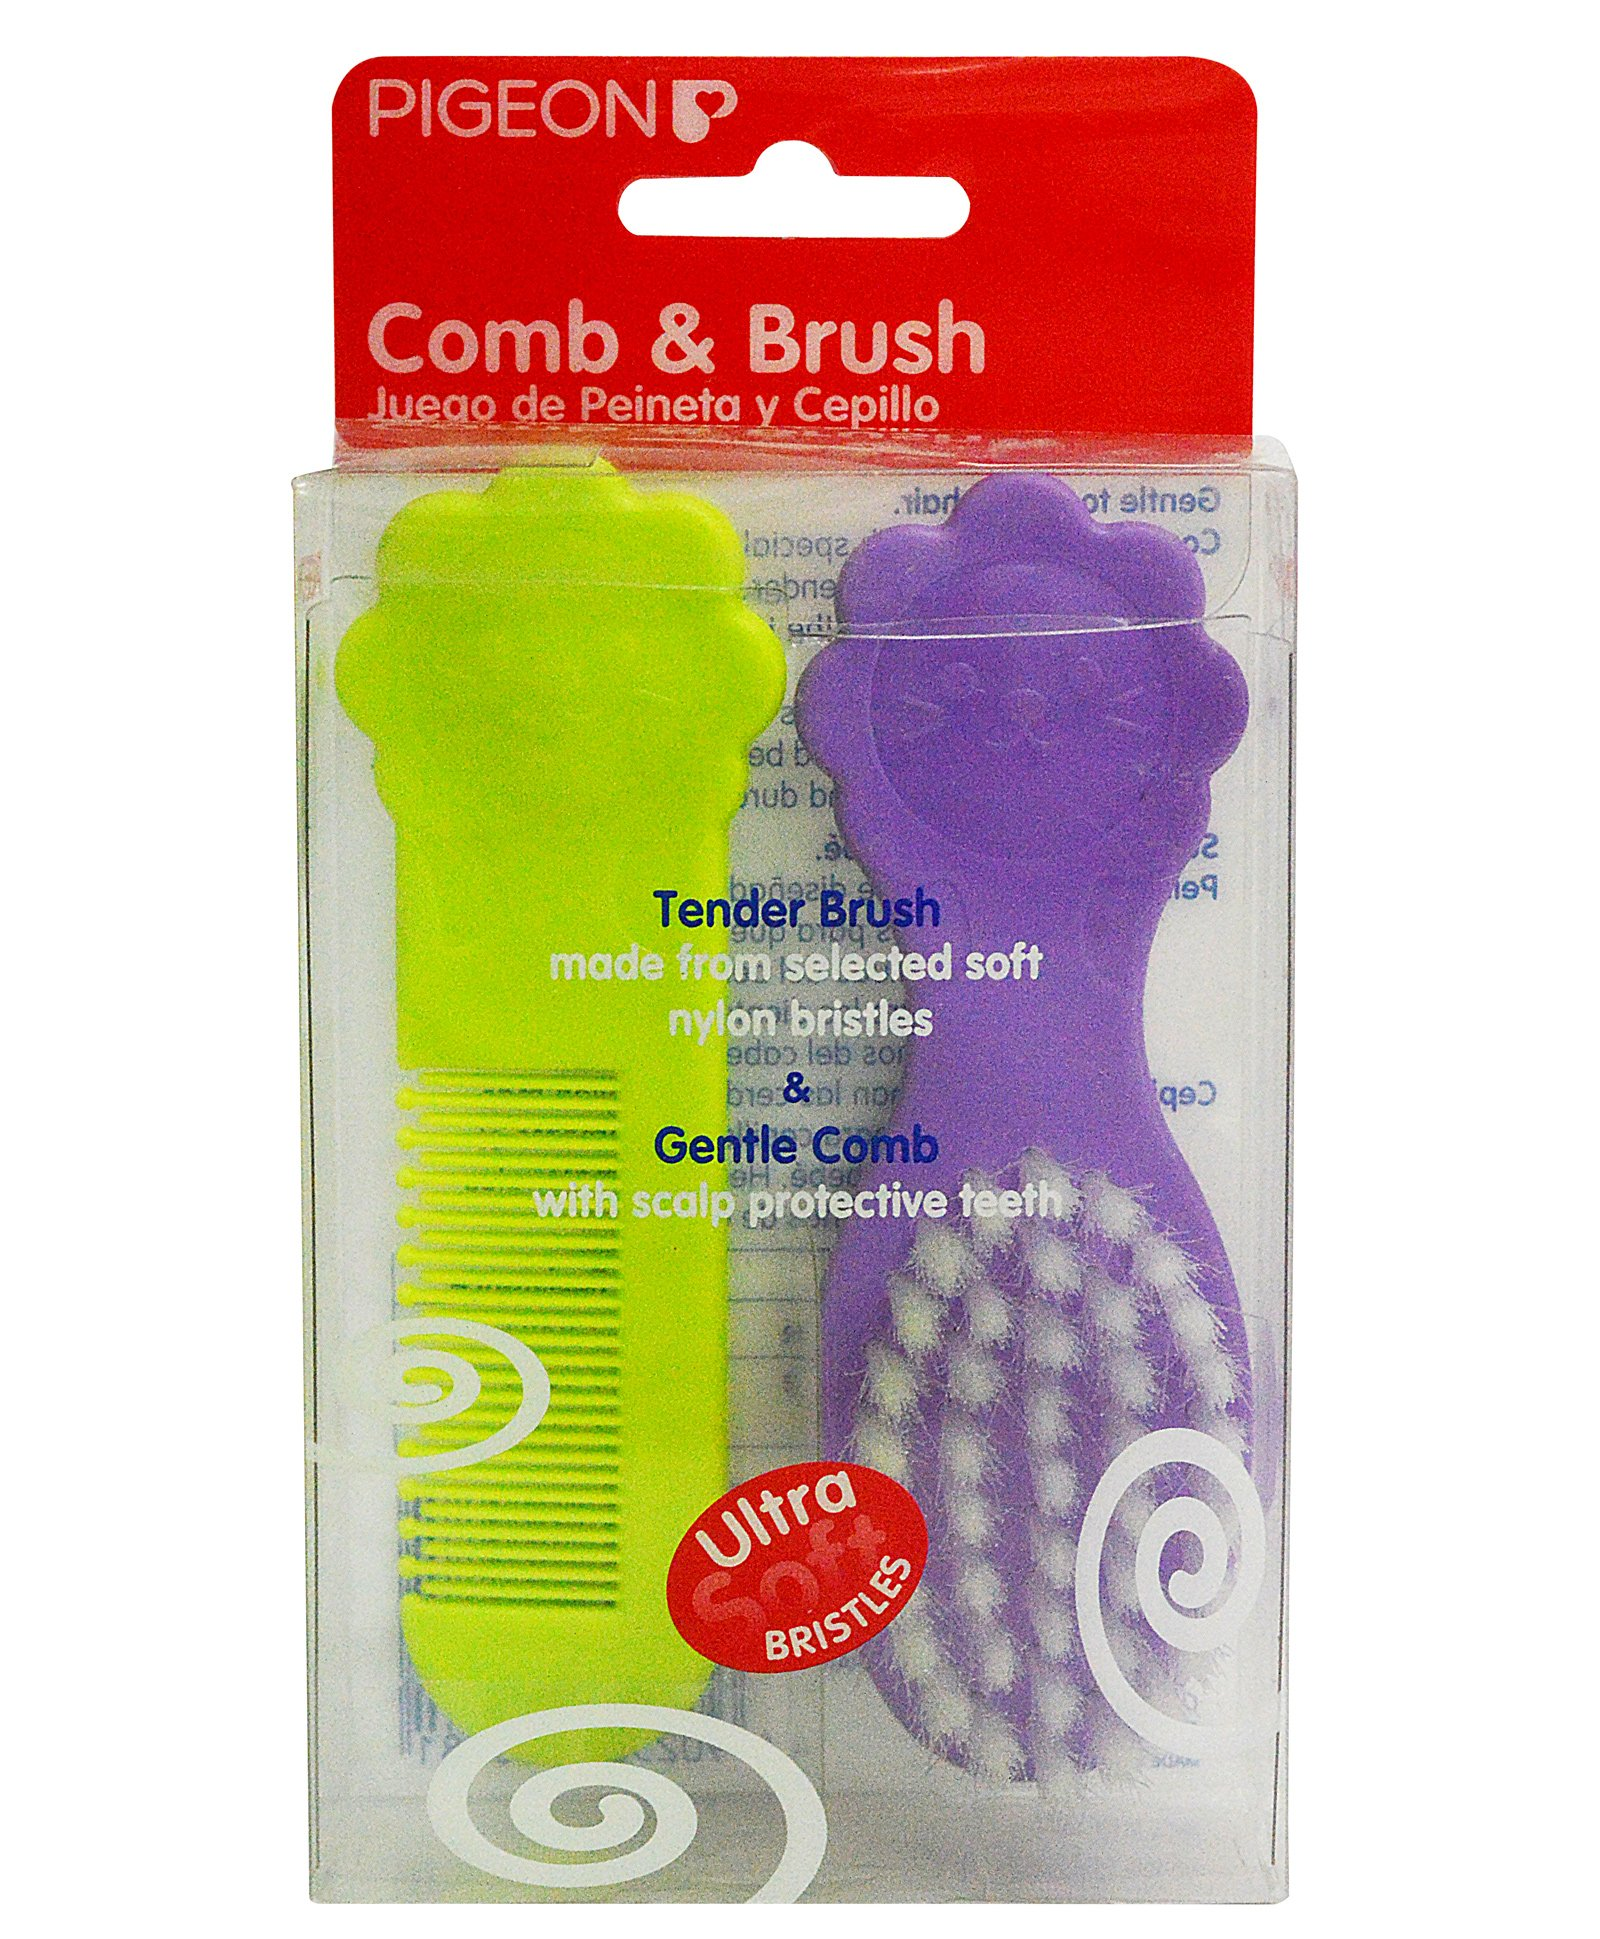 Compare Pigeon Comb And Brush Set price online India Comparometer - Kitchen Cabinets Pa